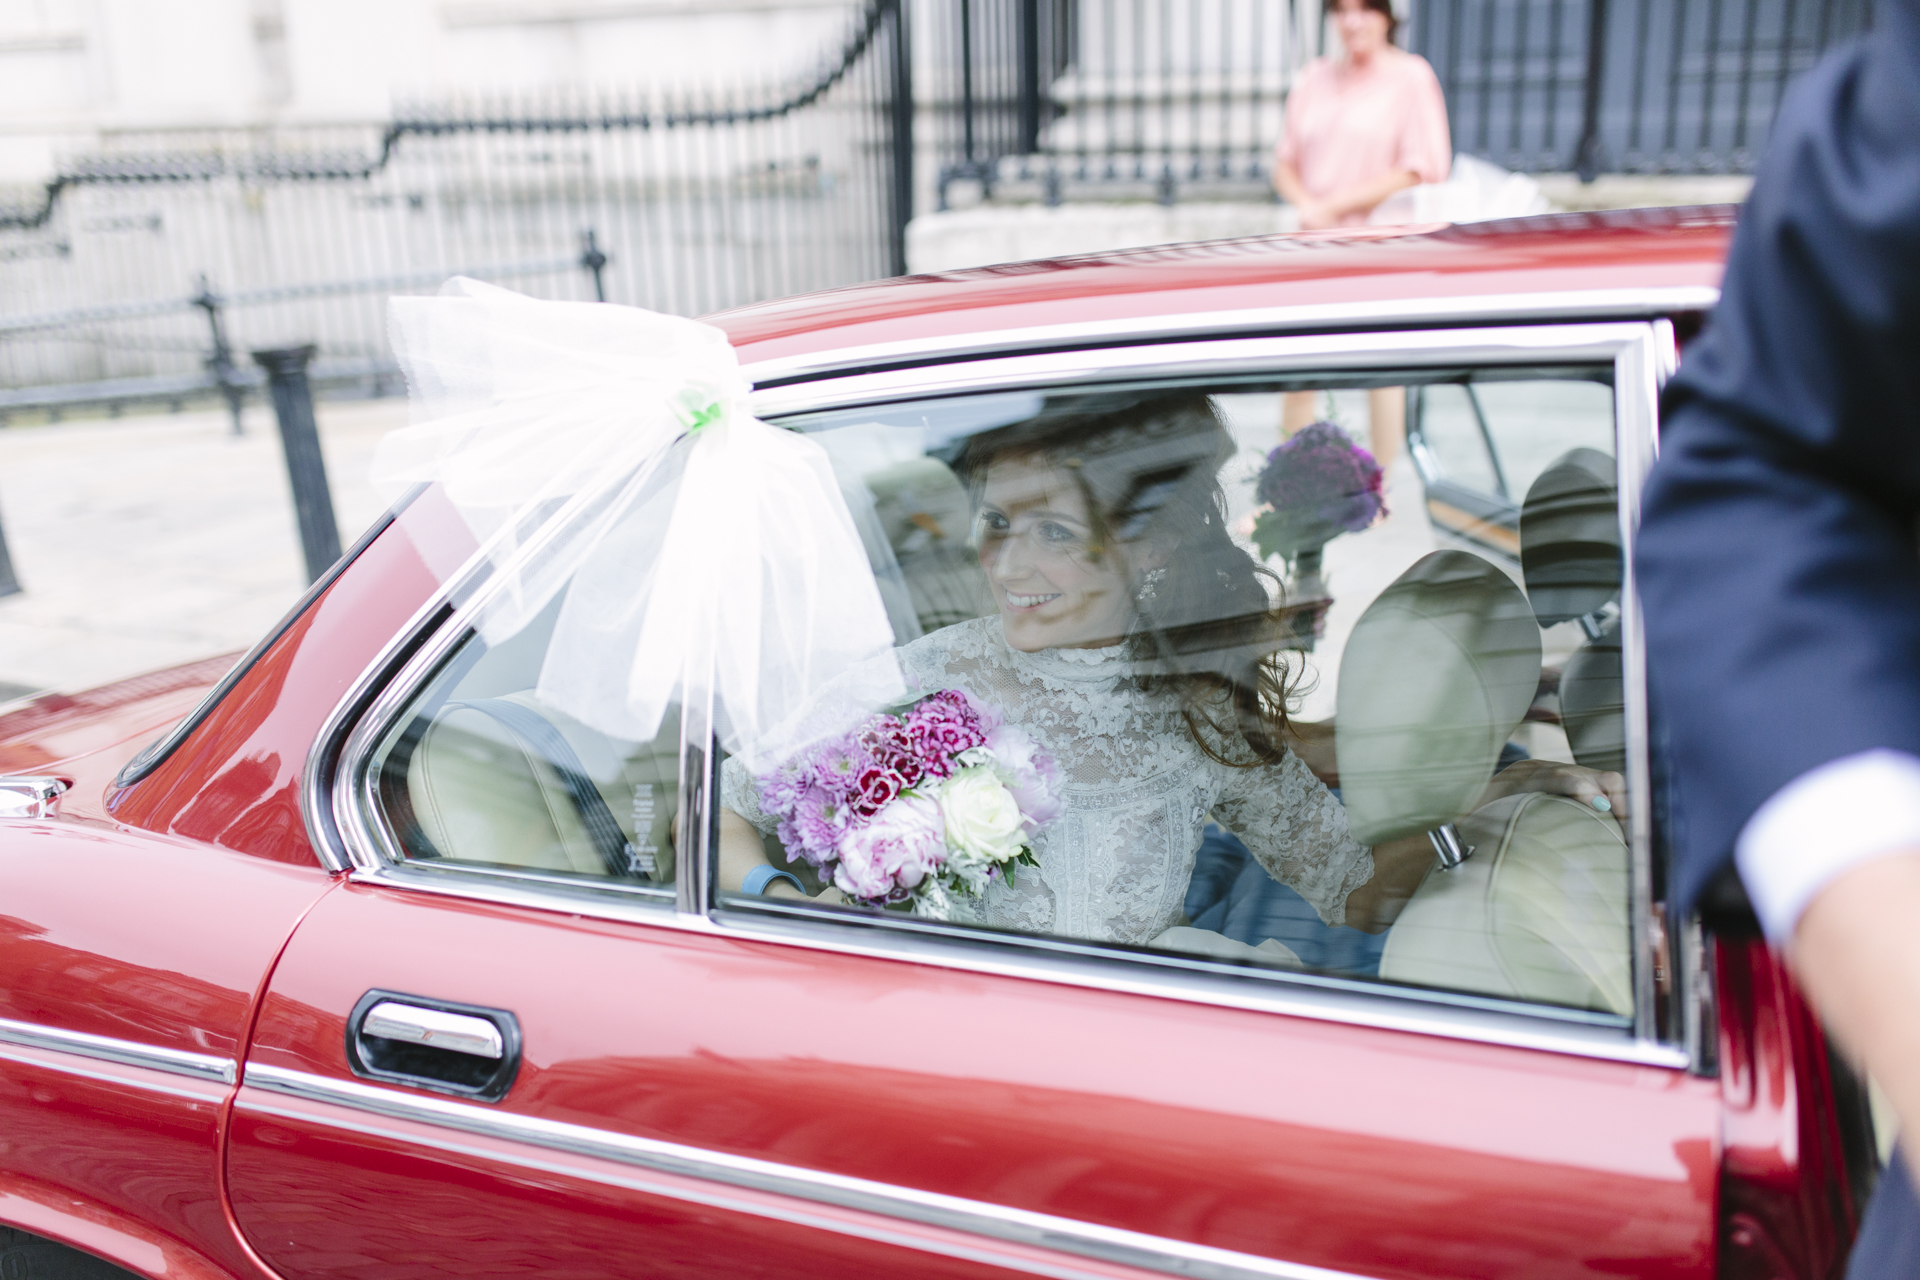 Dublin Wedding Photographer Graciela Vilagudin 00156.jpg